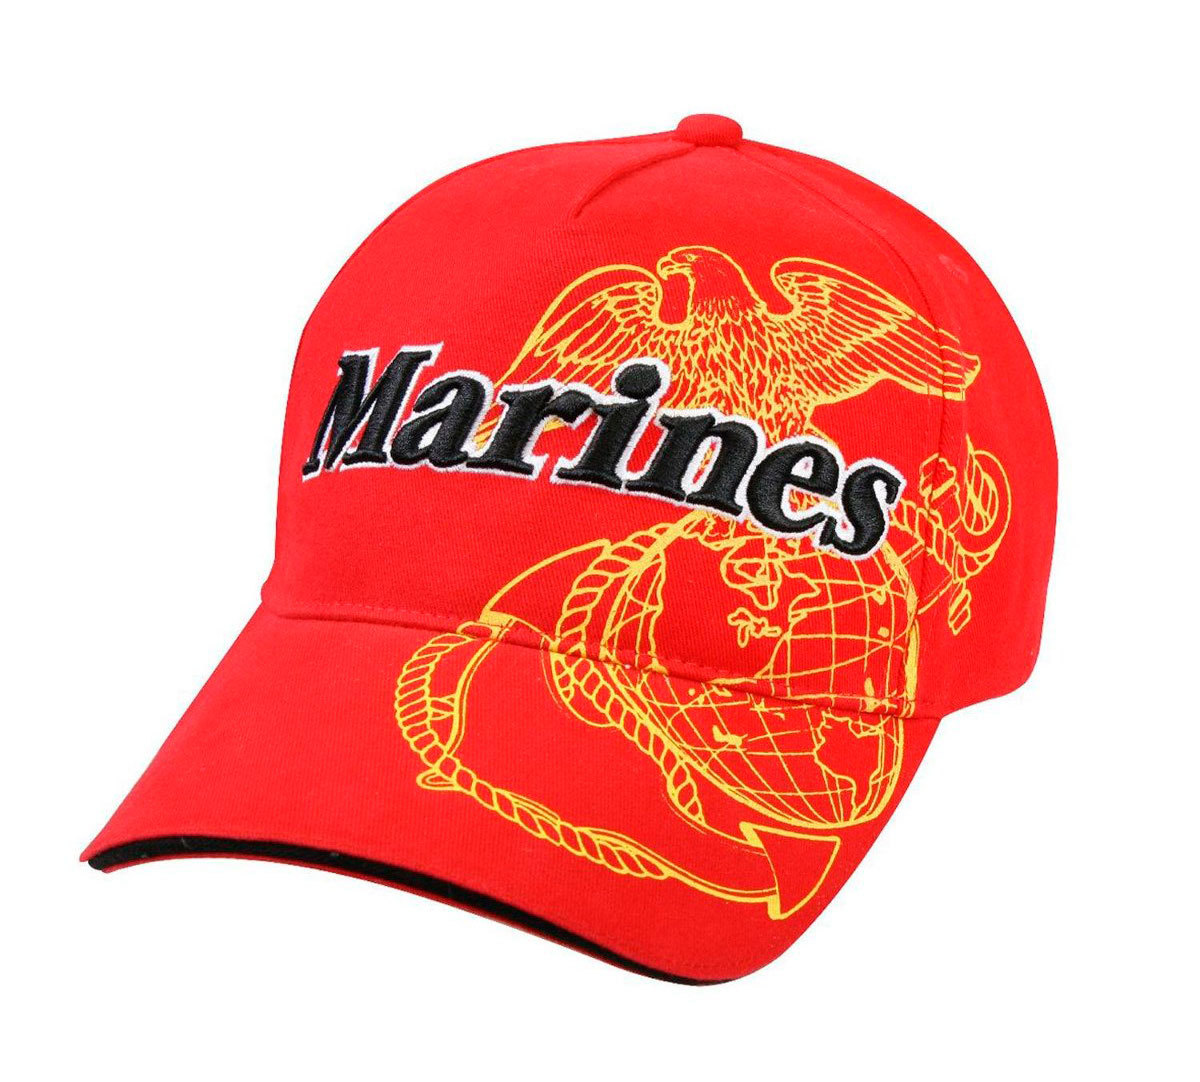 Кепка Deluxe Marines Eagle G&A Cap Rothco (красная - red)